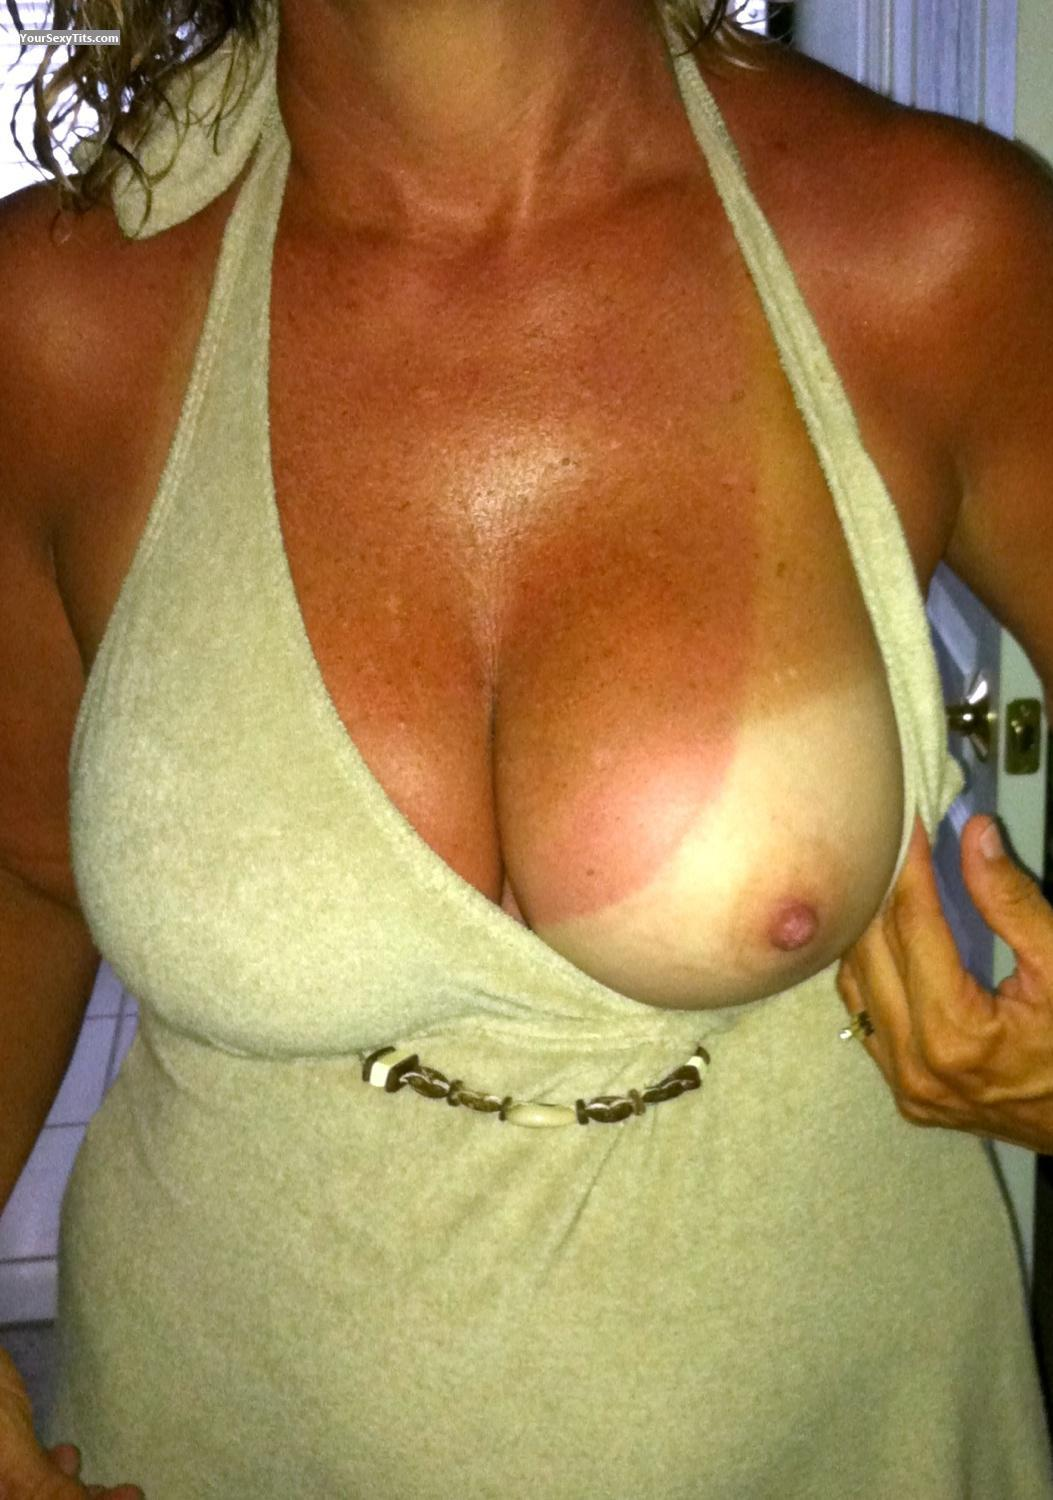 Tit Flash: Medium Tits By IPhone - 2shy from United States